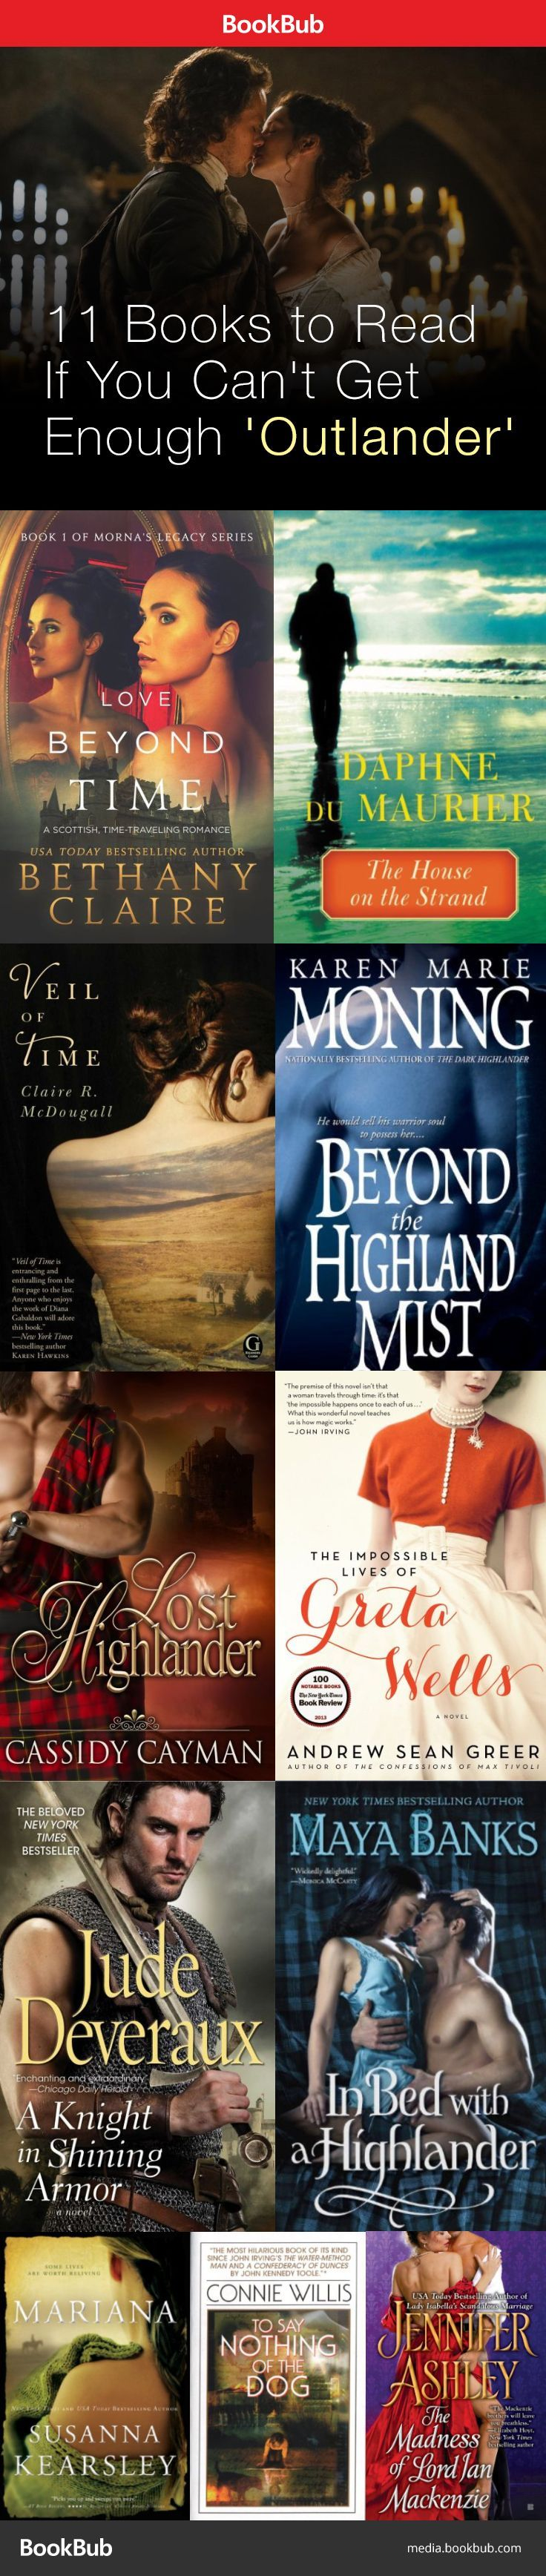 11 Books to Read If You Love Outlander - Books for Outlander fans to devour! Featuring time travel, strong heroines, the Scottish highlands, and more